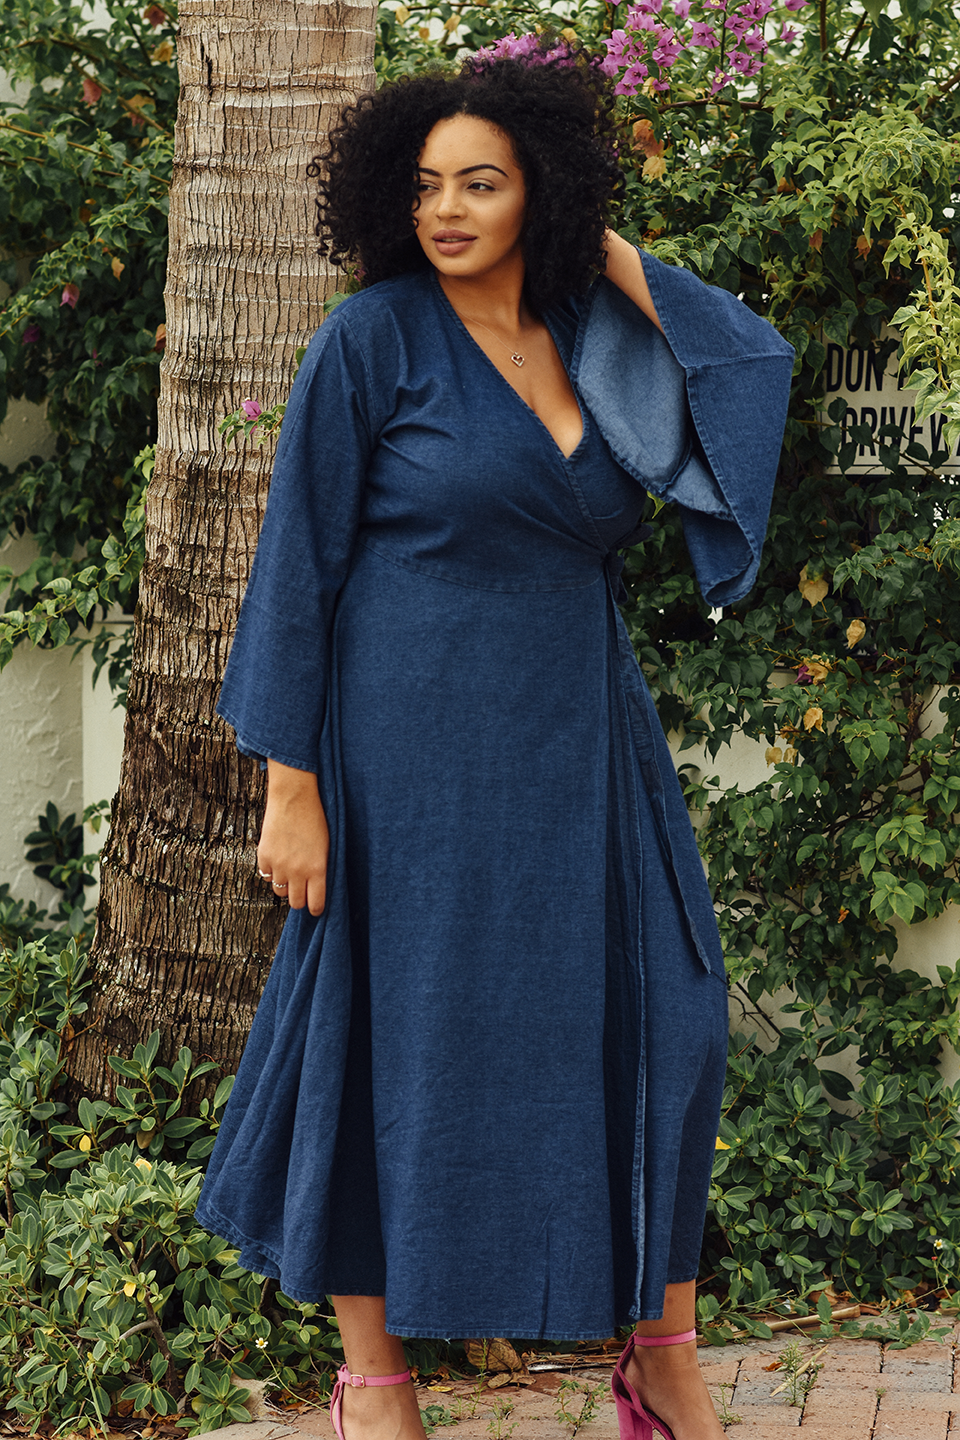 About Me | Plus-Size Lifestyle & Travel Blogger wearing Bombshell Boutique Dress in West Palm Beach, Florida